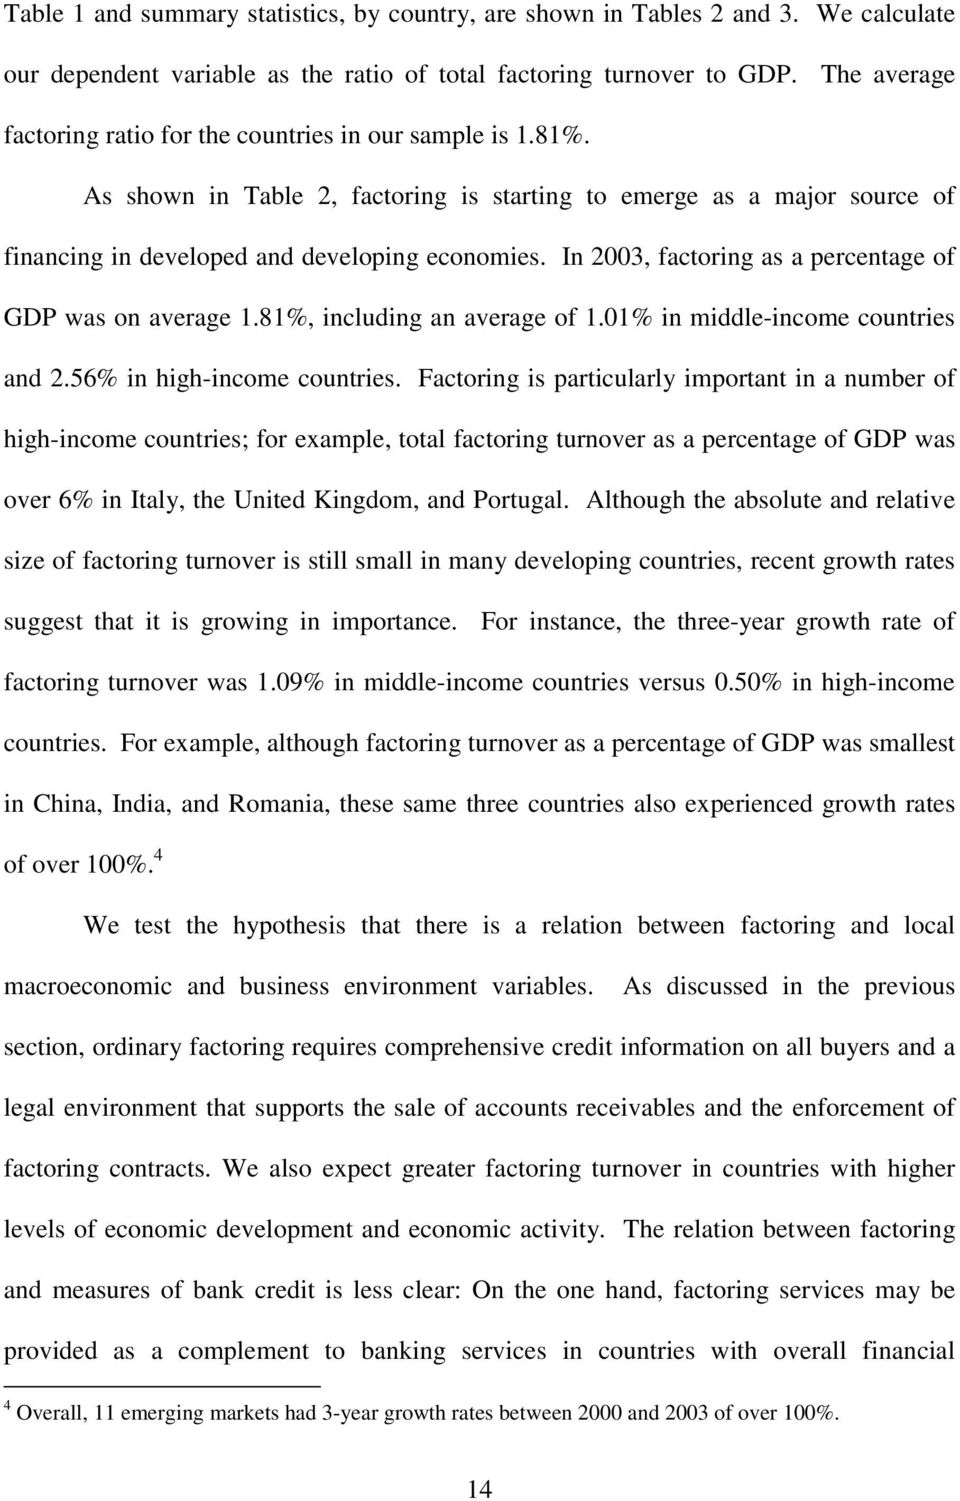 In 2003, factoring as a percentage of GDP was on average 1.81%, including an average of 1.01% in middle-income countries and 2.56% in high-income countries.